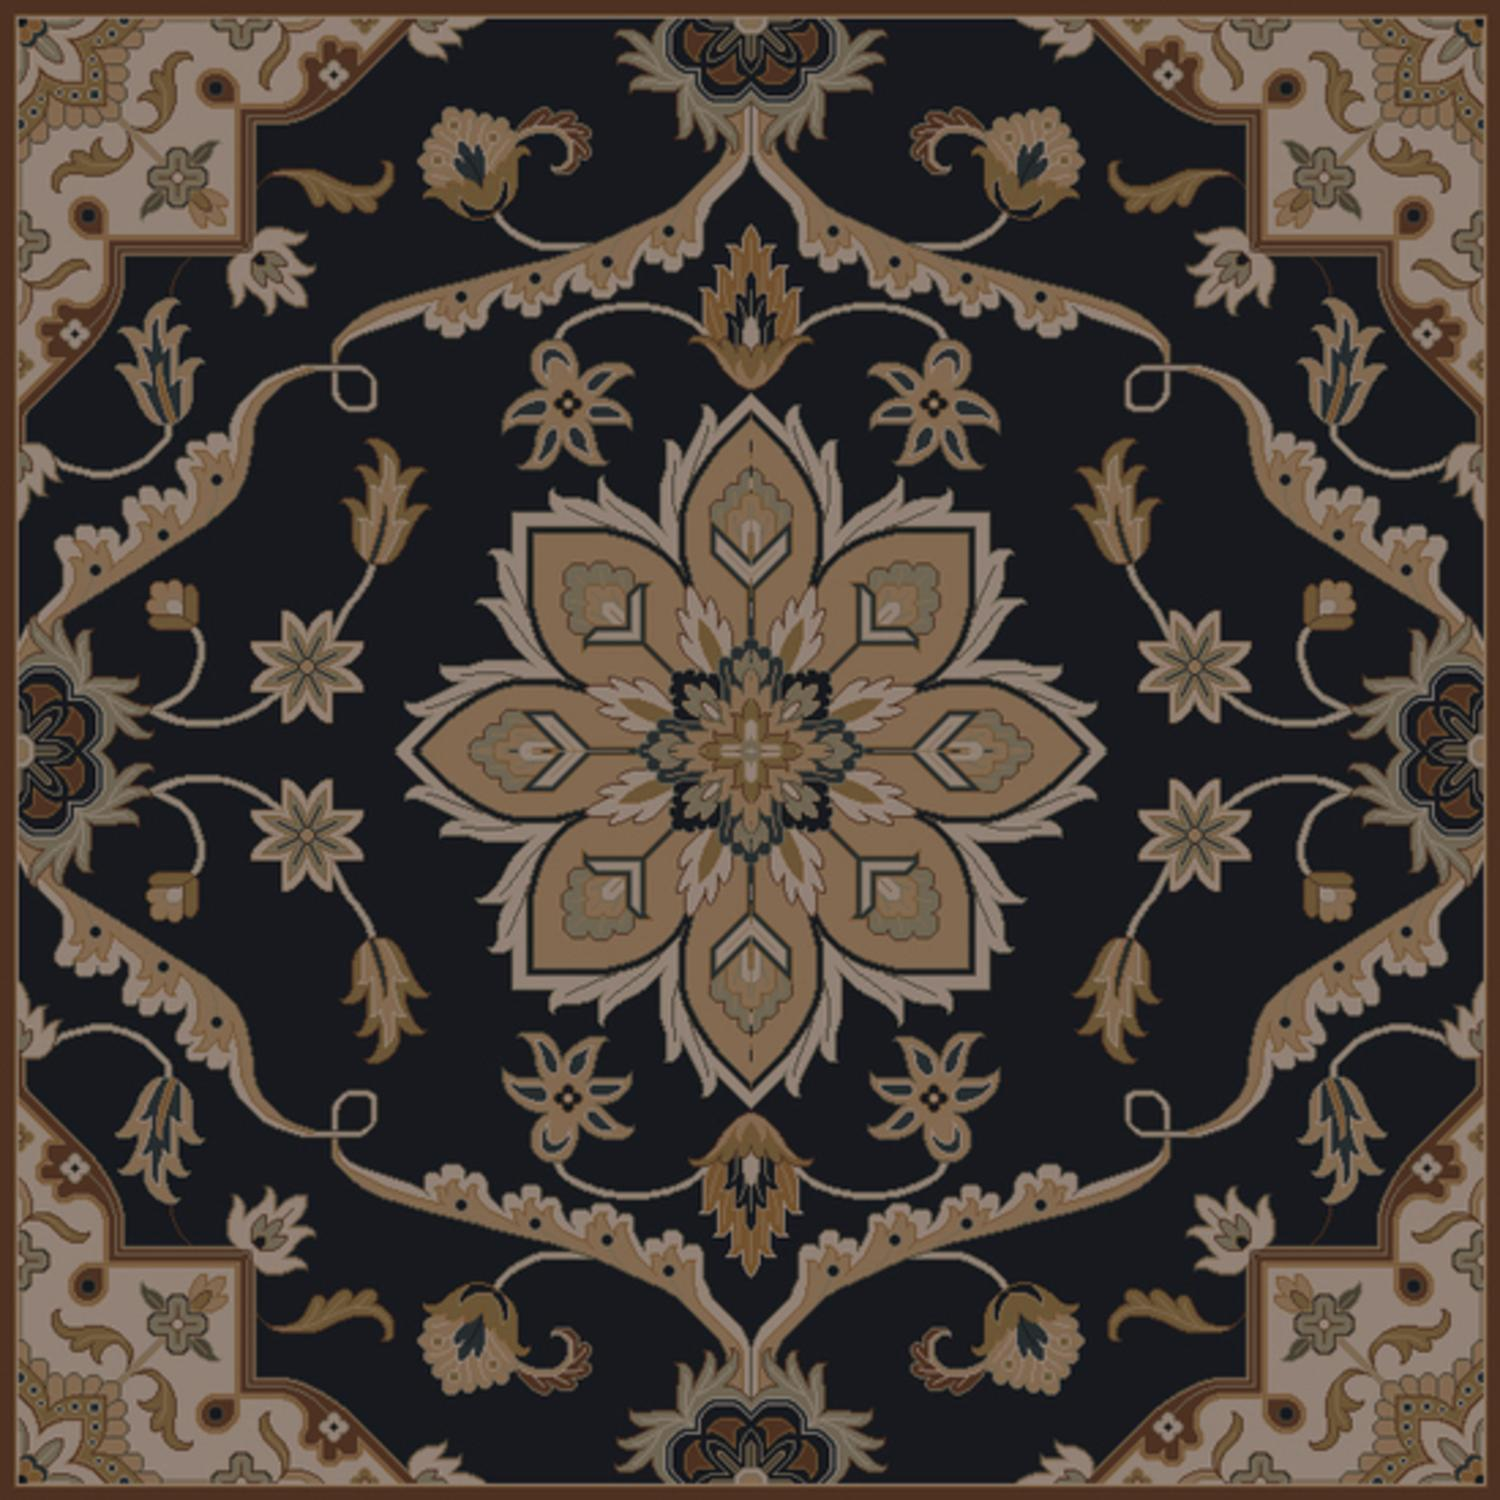 4' x 4' Claudius Sepia, Taupe and Slate Blue Square Wool Area Throw Rug